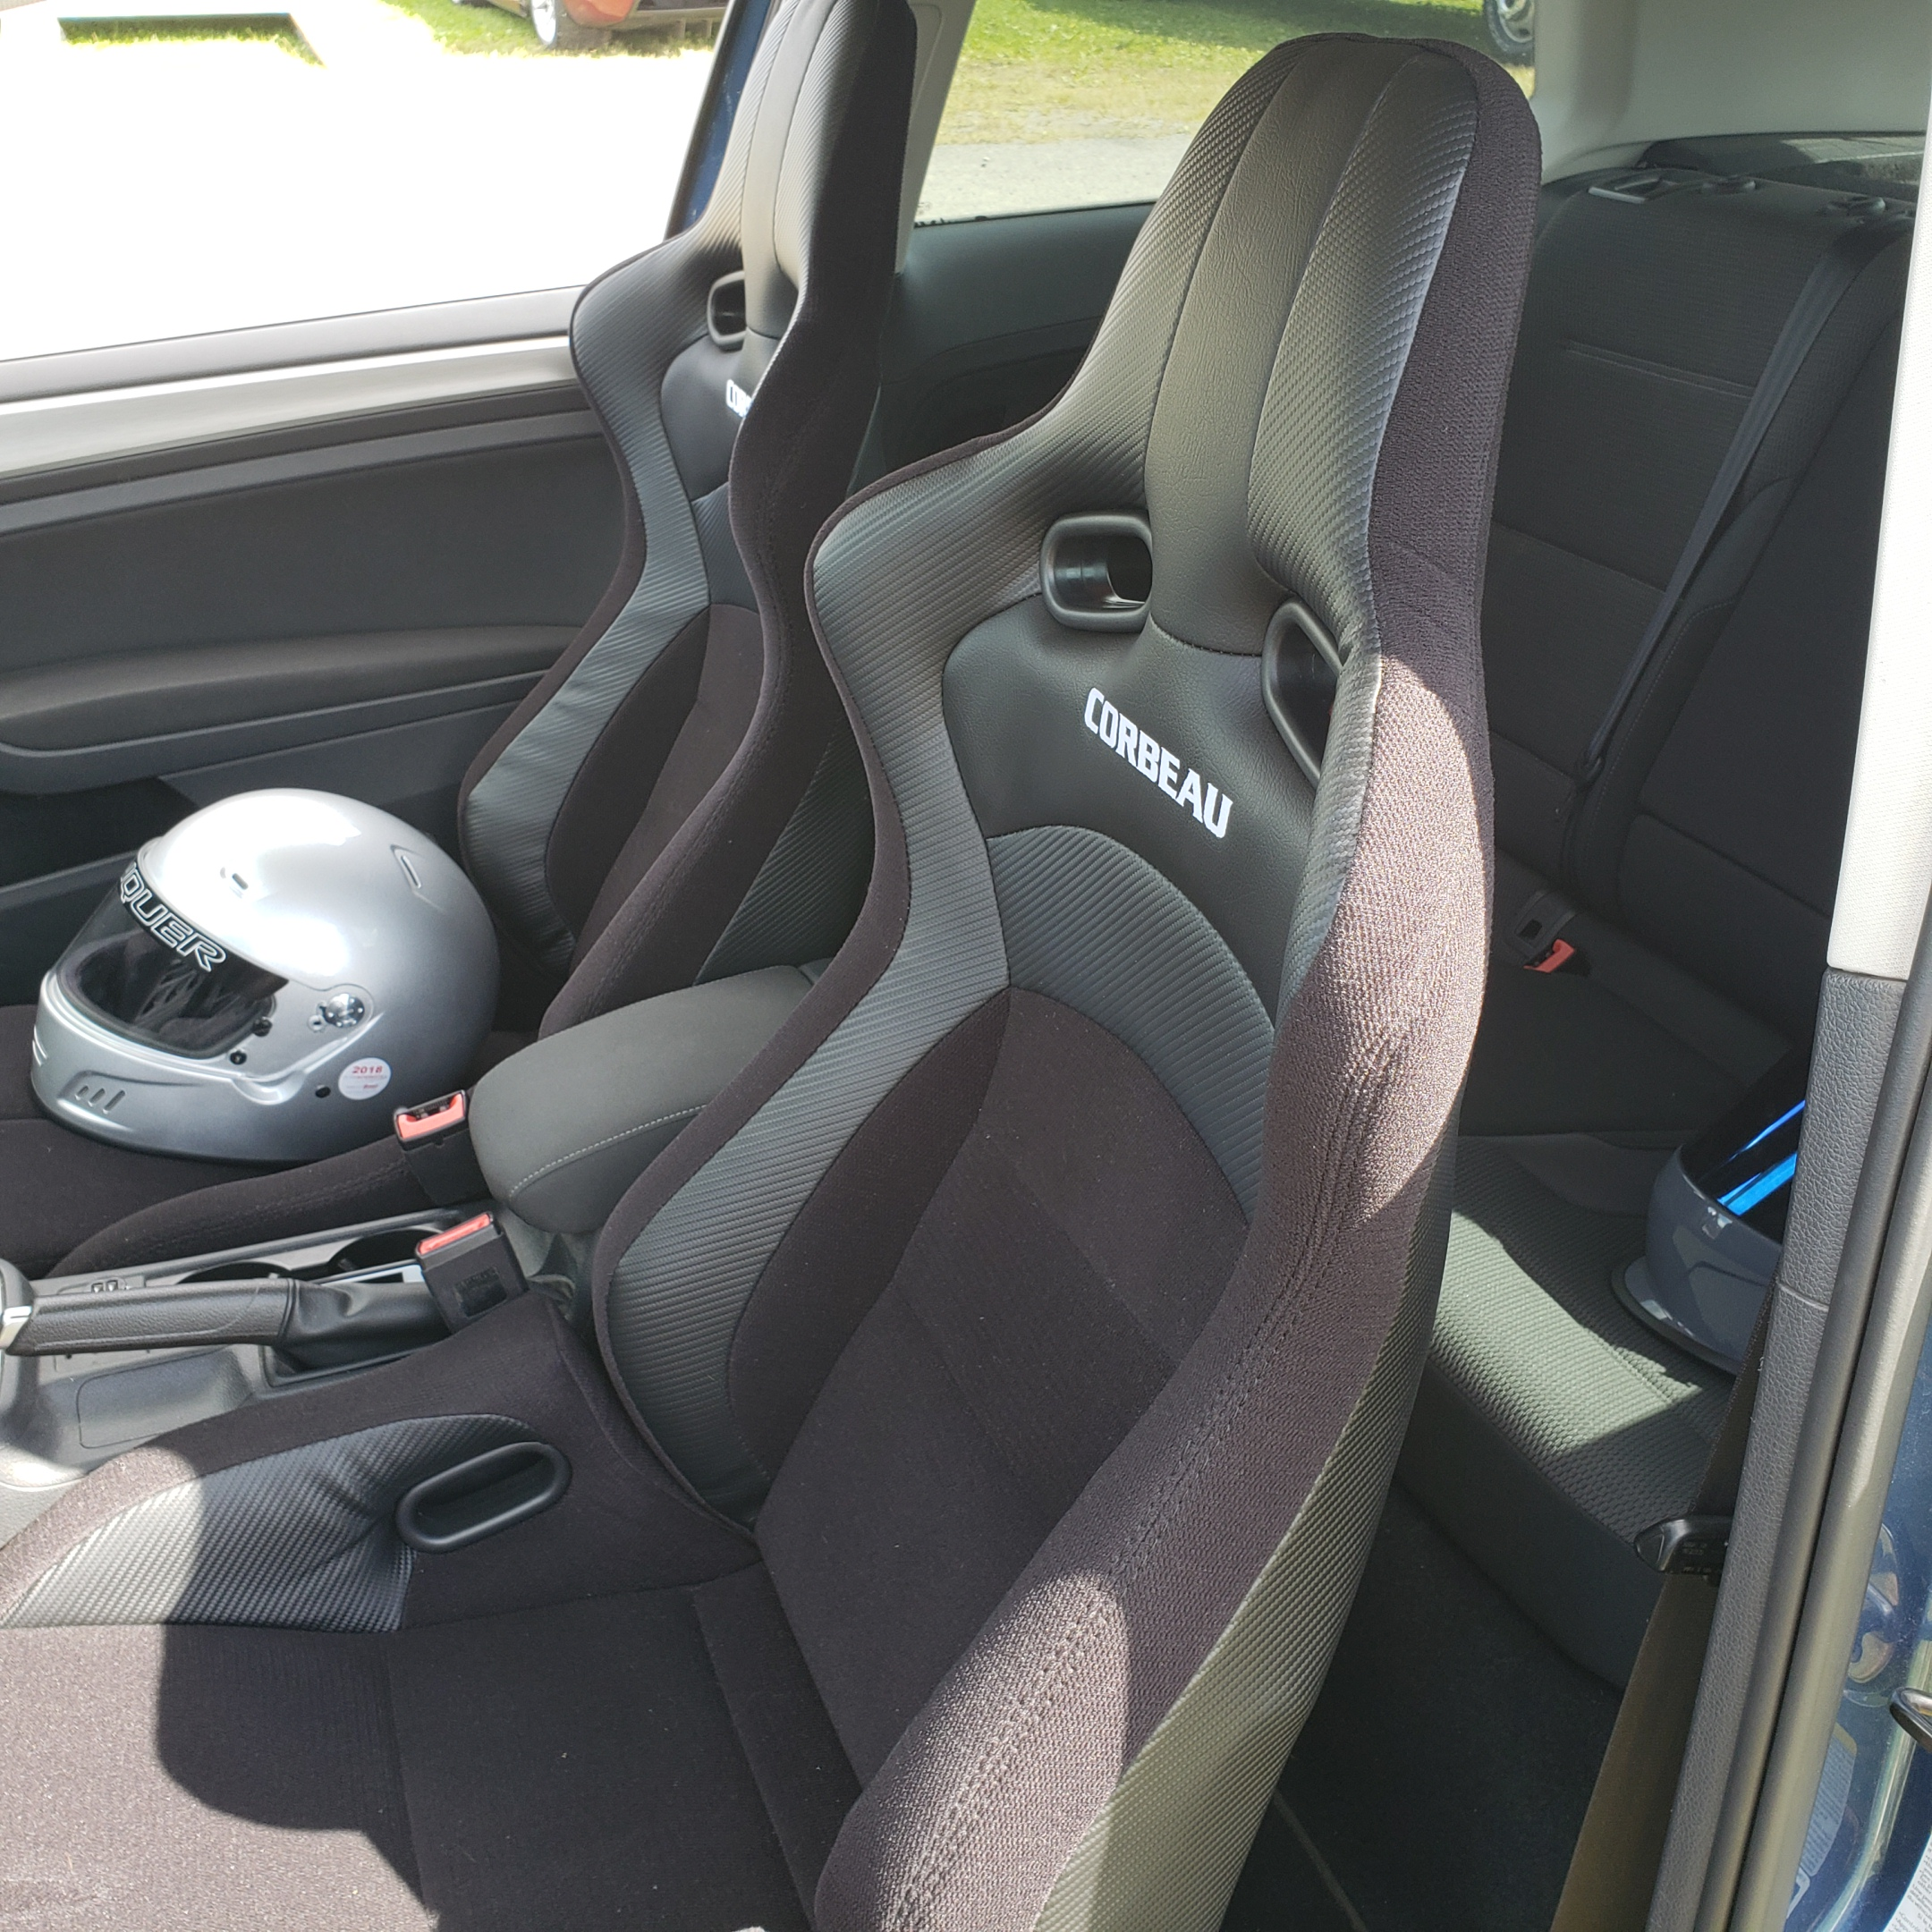 corbeau seats inside car 1.jpg